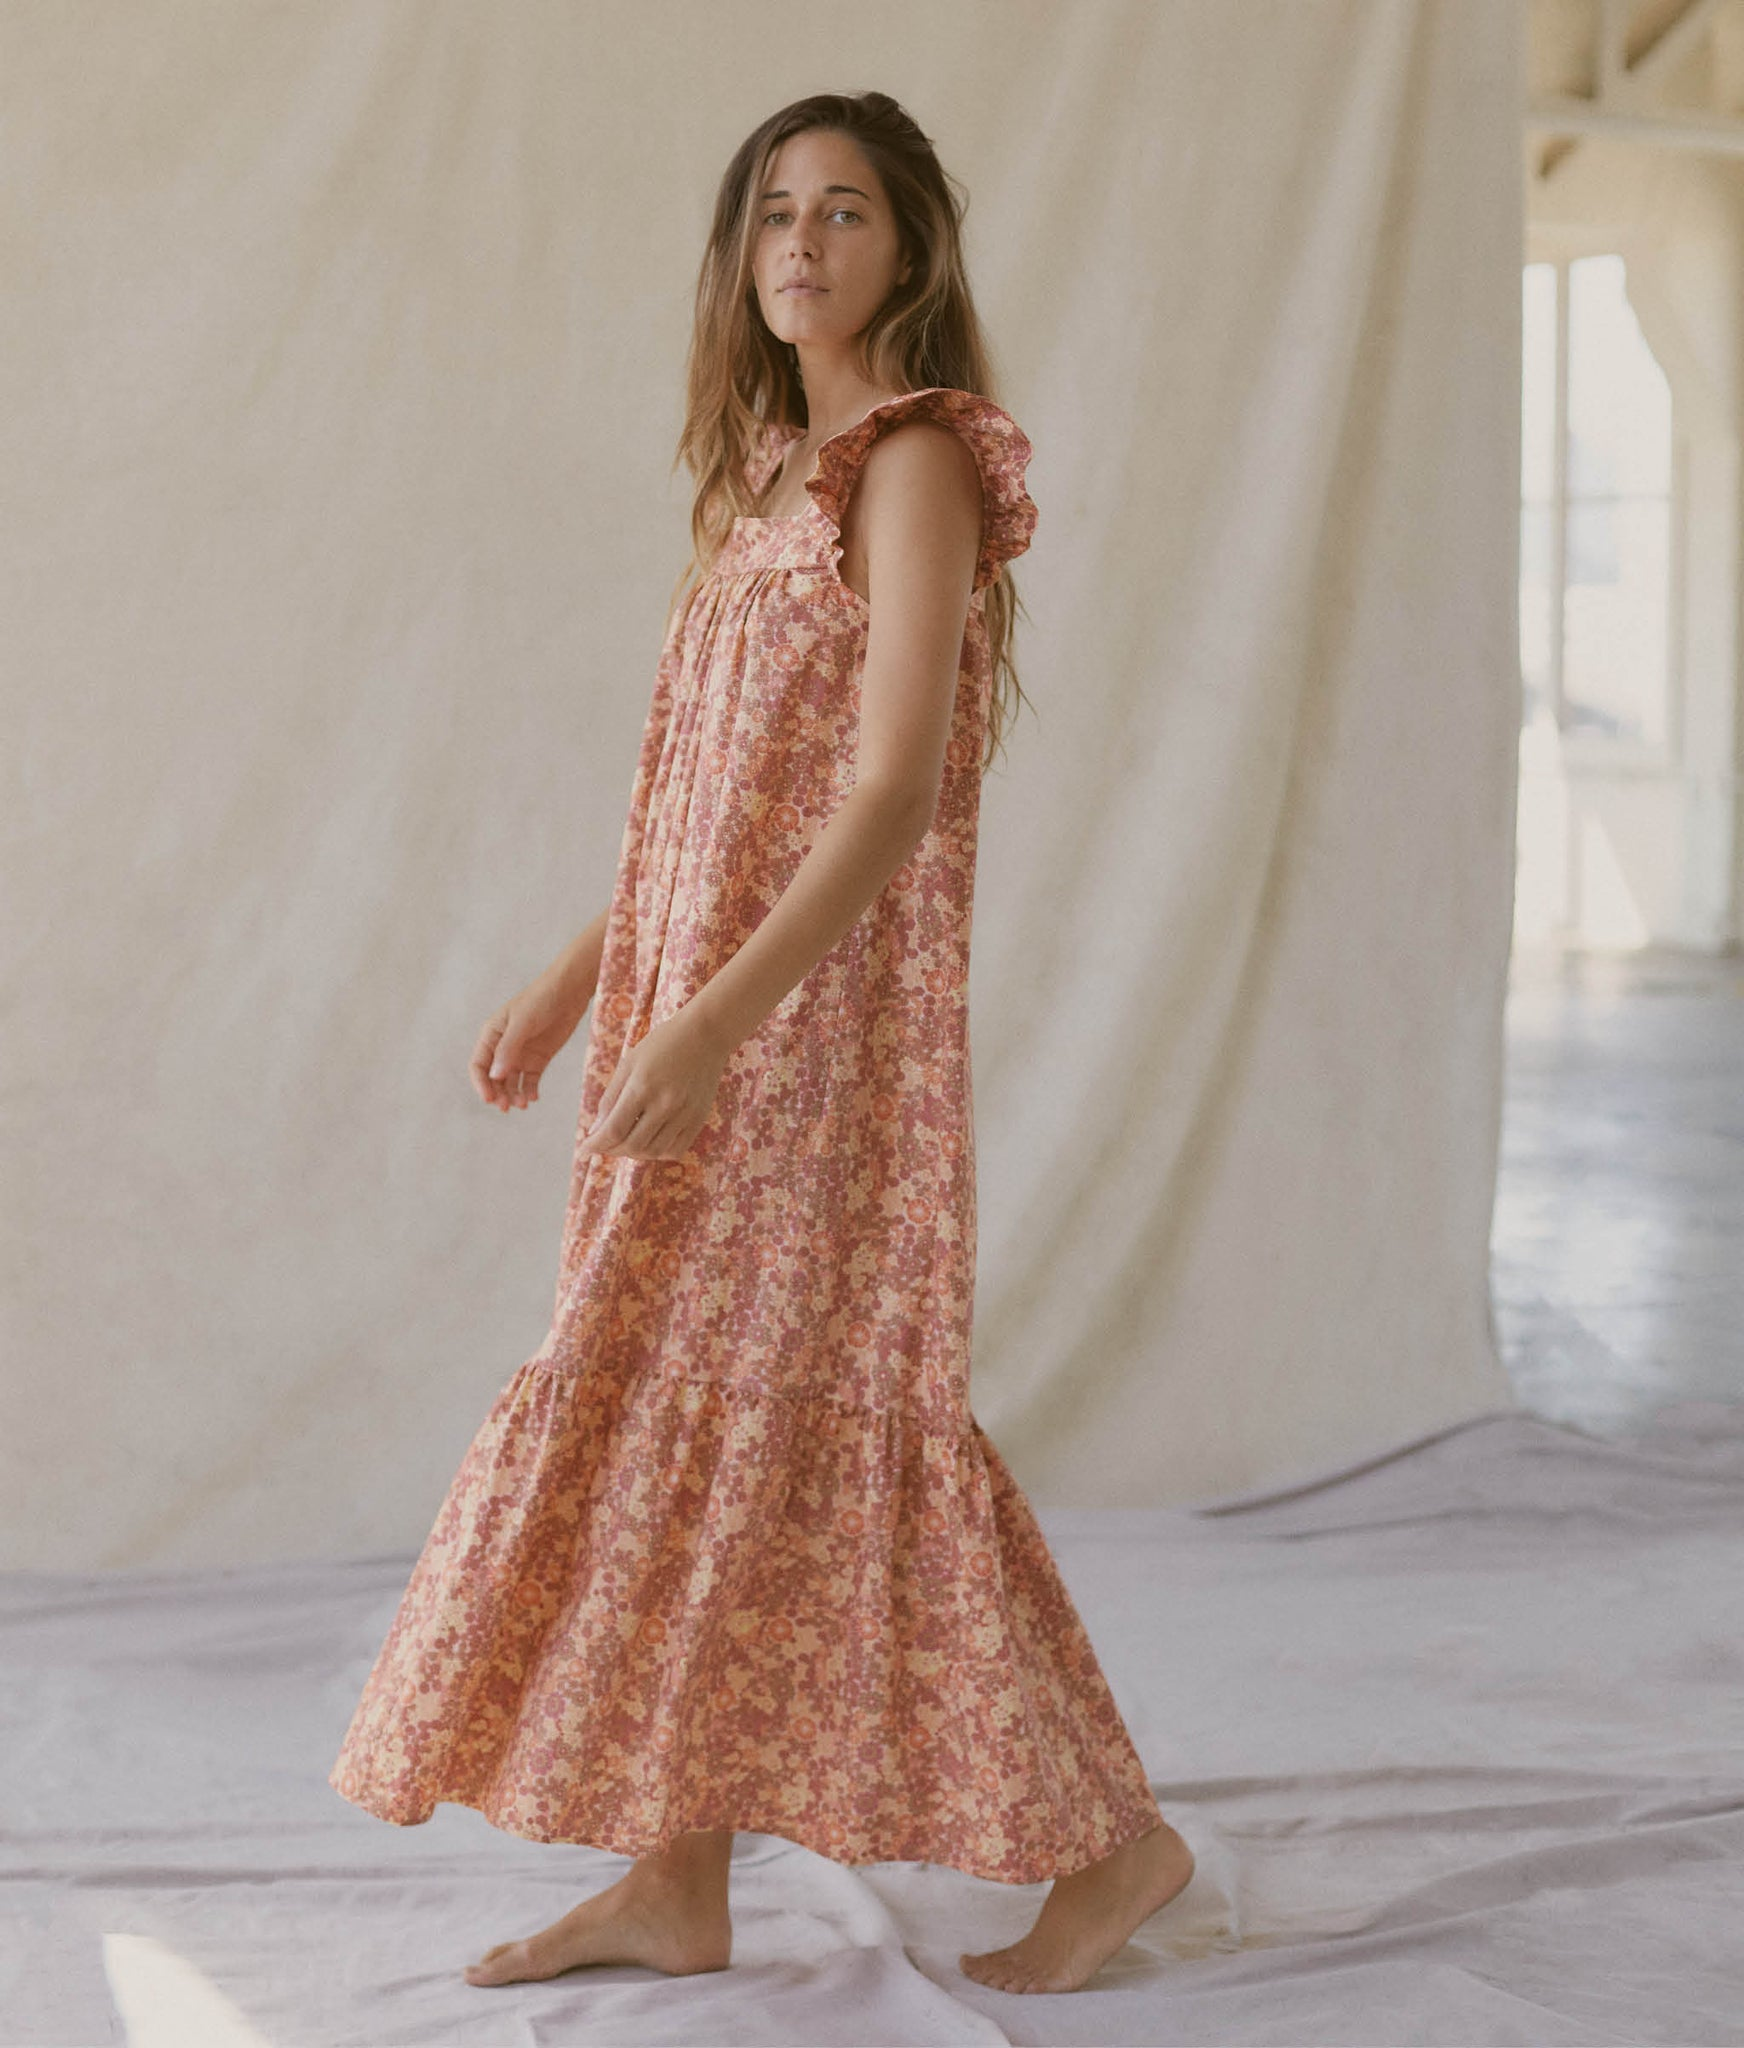 The Benny Dress | Vintage Floral